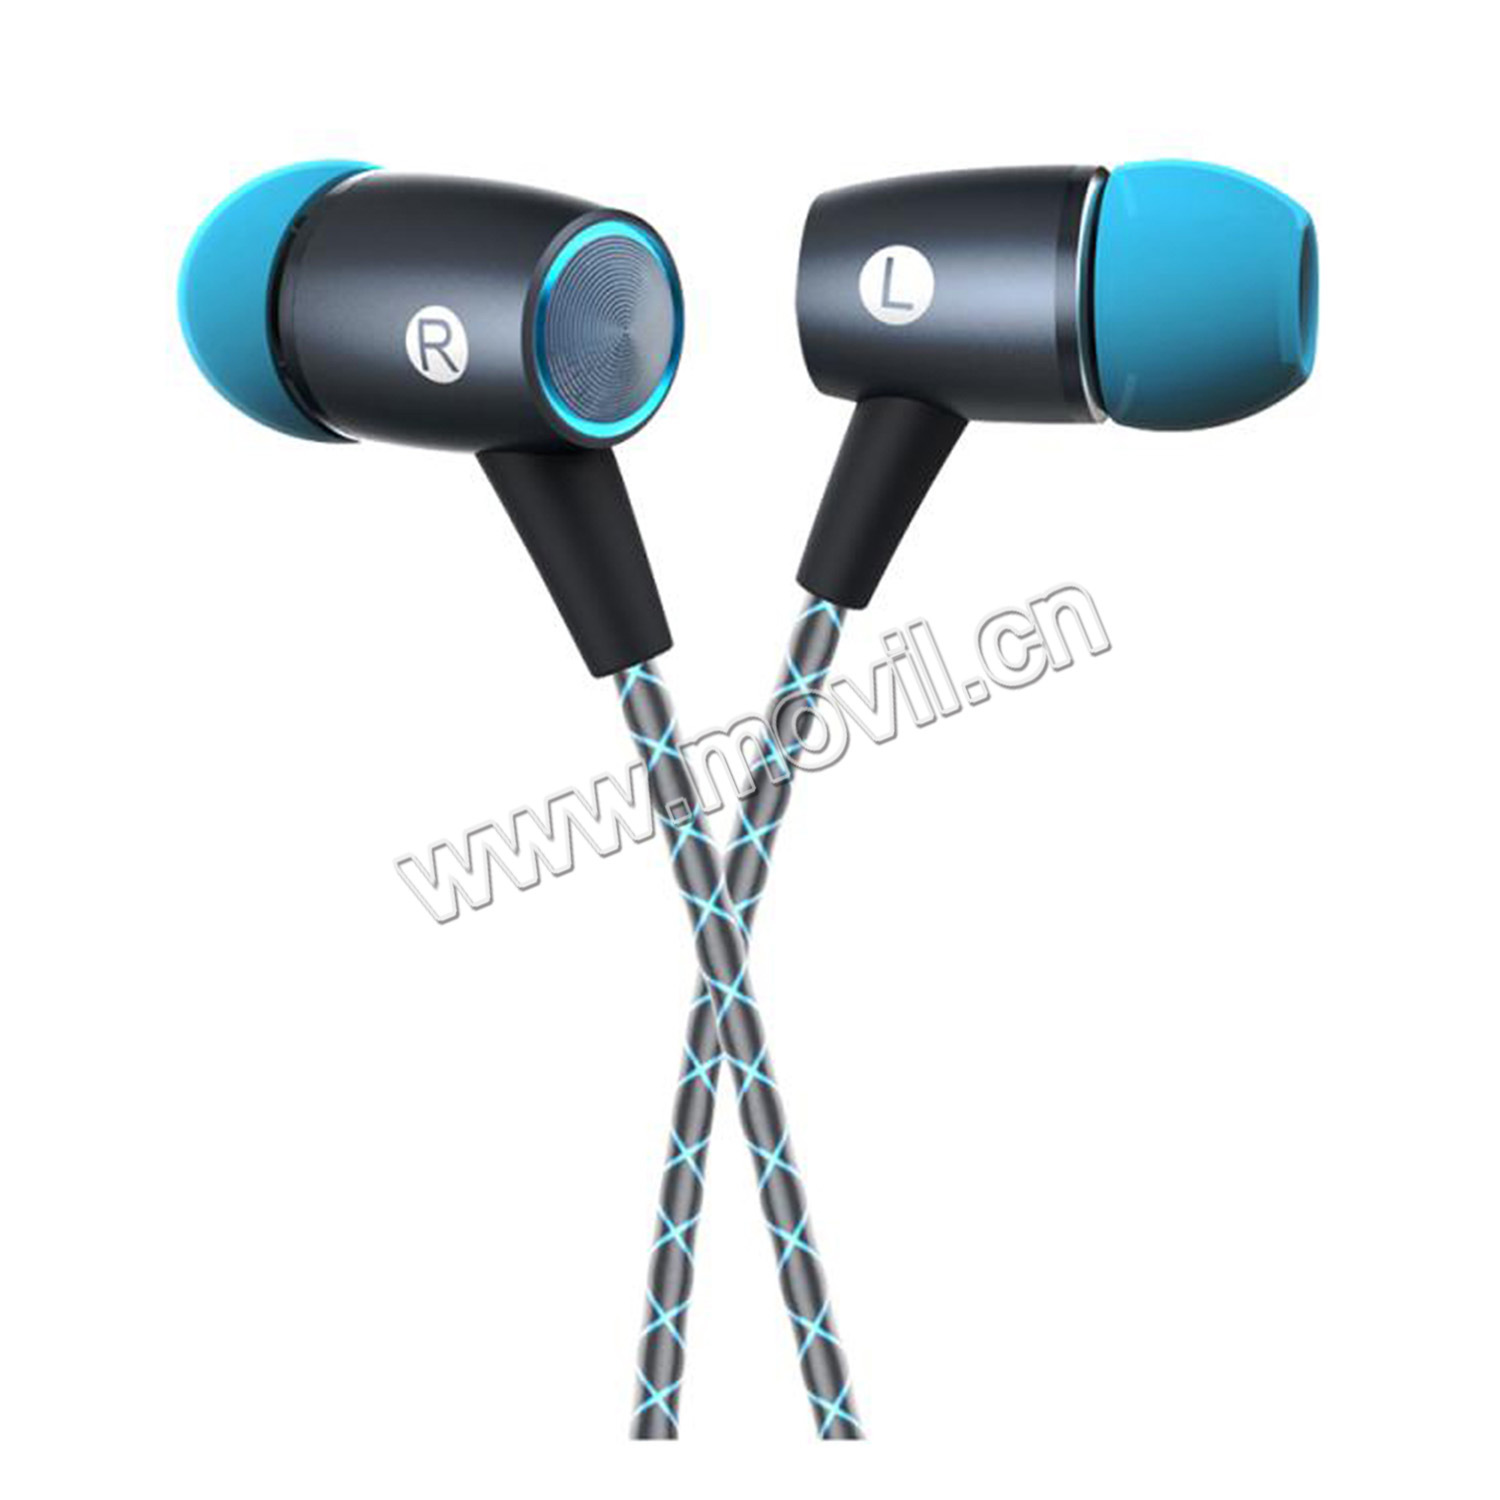 Auriculares Manos Libres Movil China Earphone Original Huawei Am12 Gris Auriculares Manos Libres